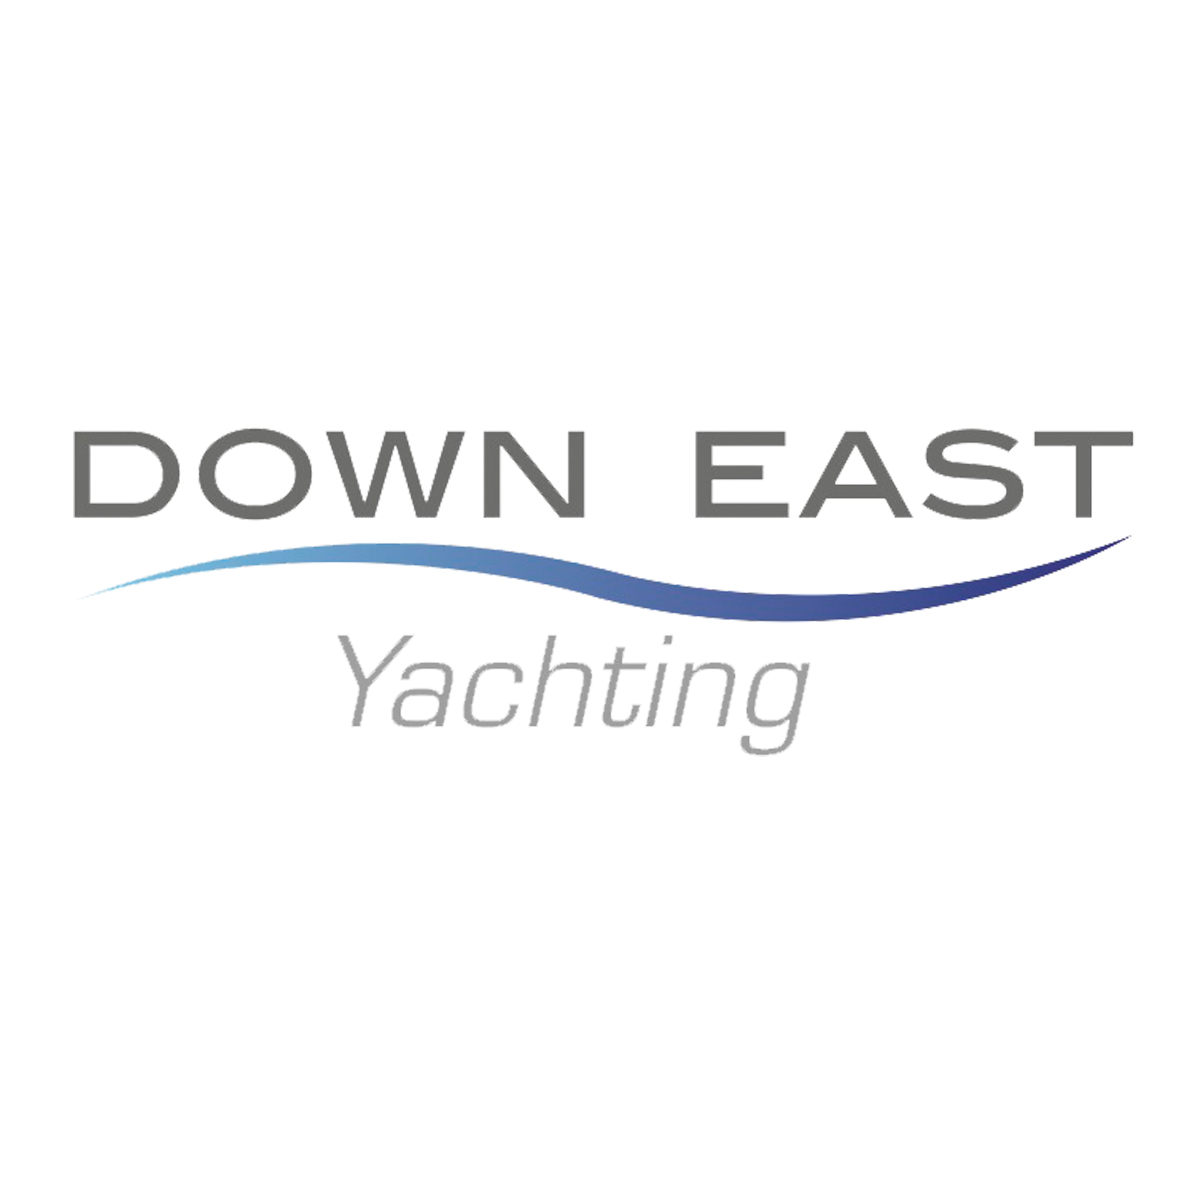 DOWN EAST YACHTING - LOGO ADDED TO OTHER PRODUCTS